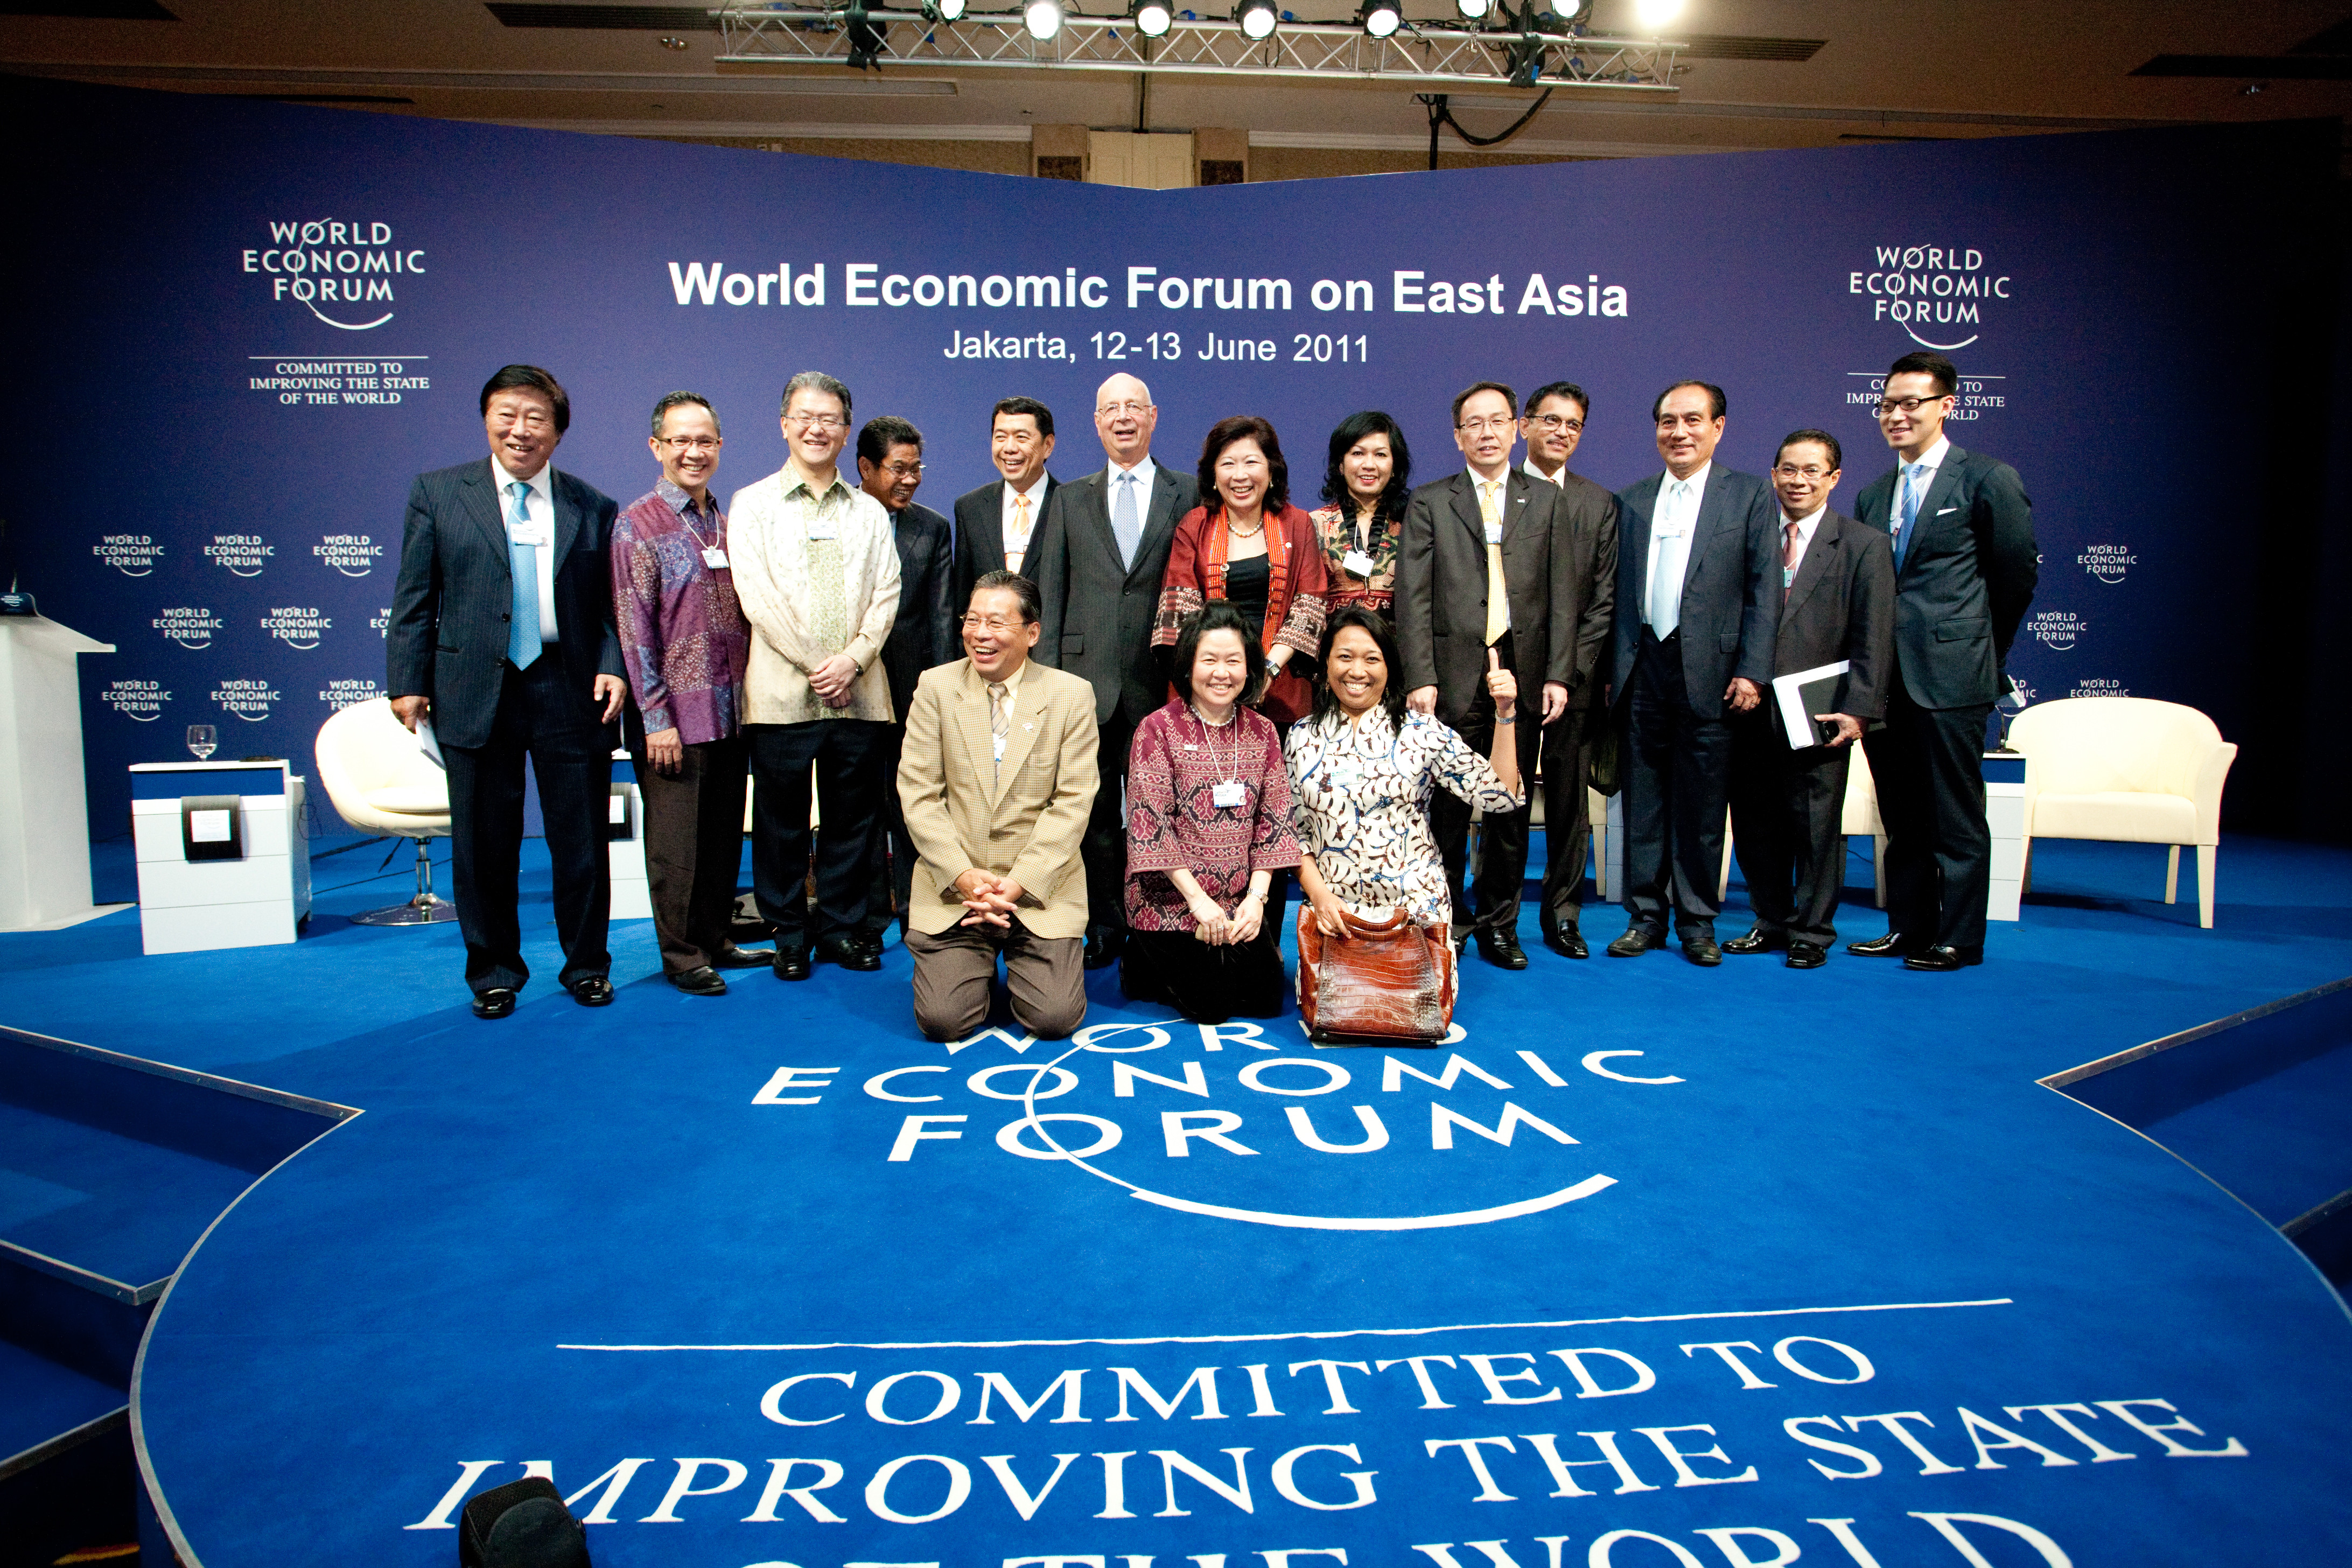 Klaus Schwab, Executive Chairman, World Economic Forum pose together with Organizing Committee members after the Closing Ceremony